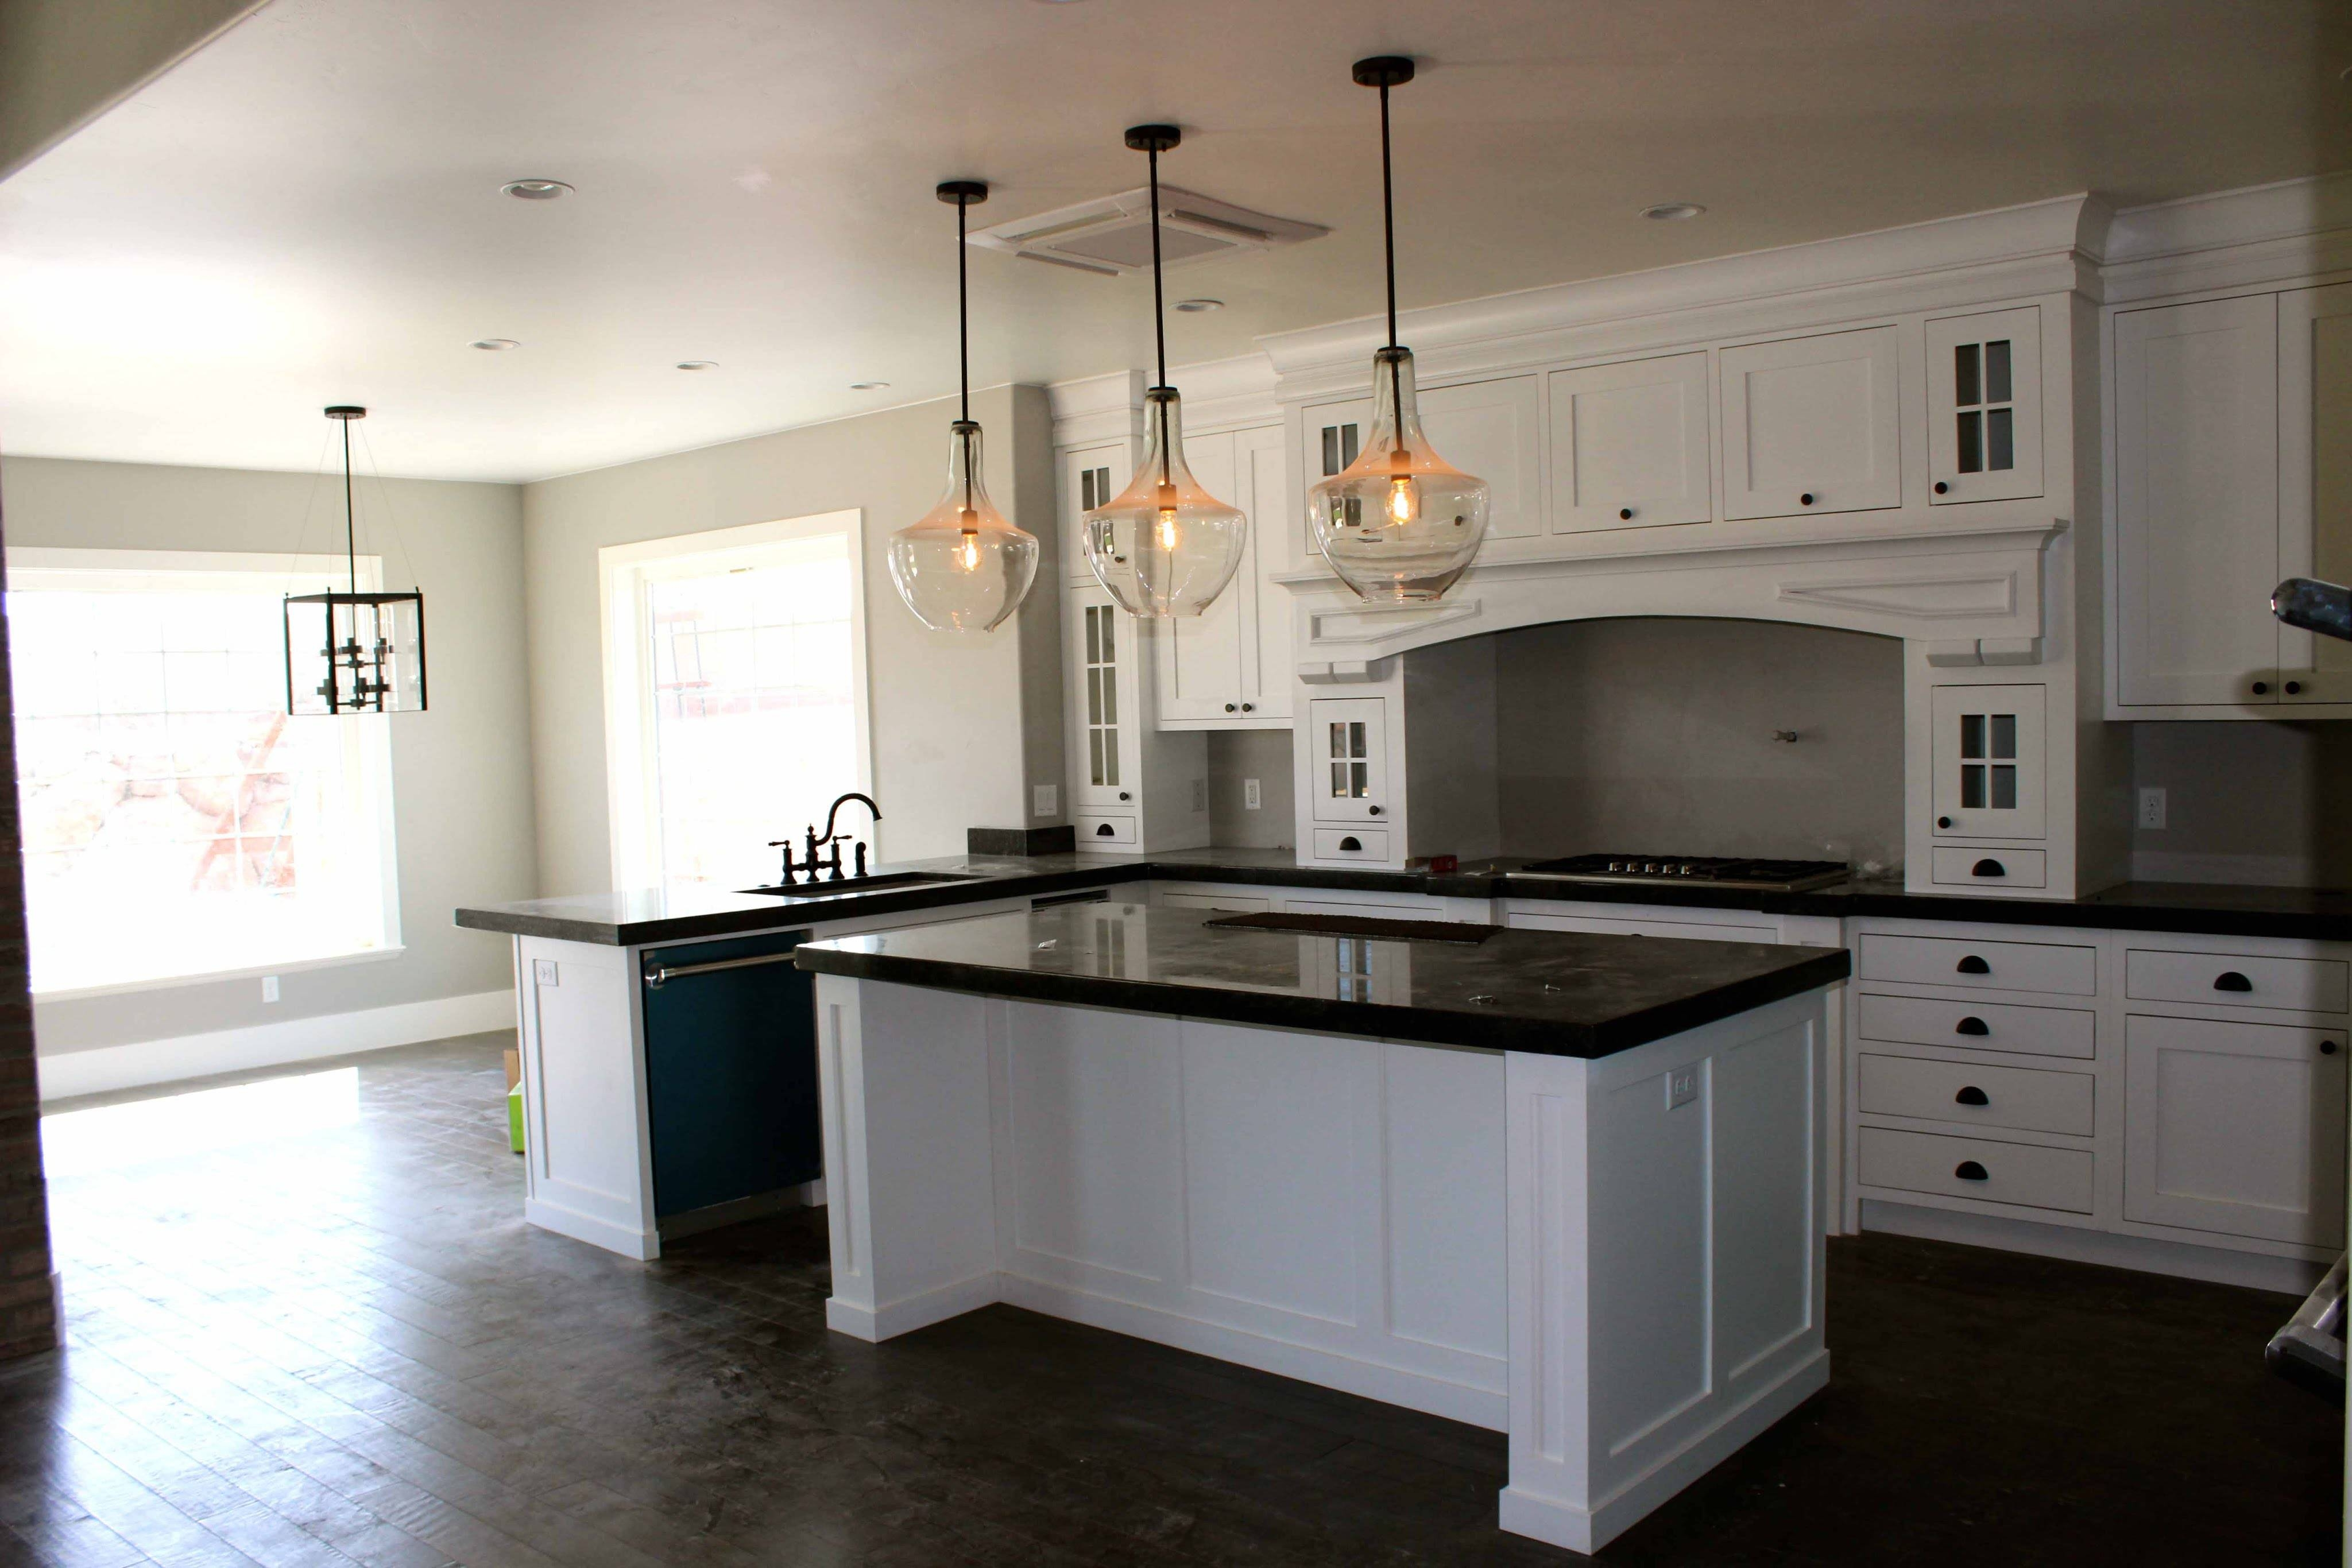 Photos Hgtv Kitchen Island With Stainless Steel Pendant Lights with Stainless Steel Kitchen Pendant Lights (Image 11 of 15)